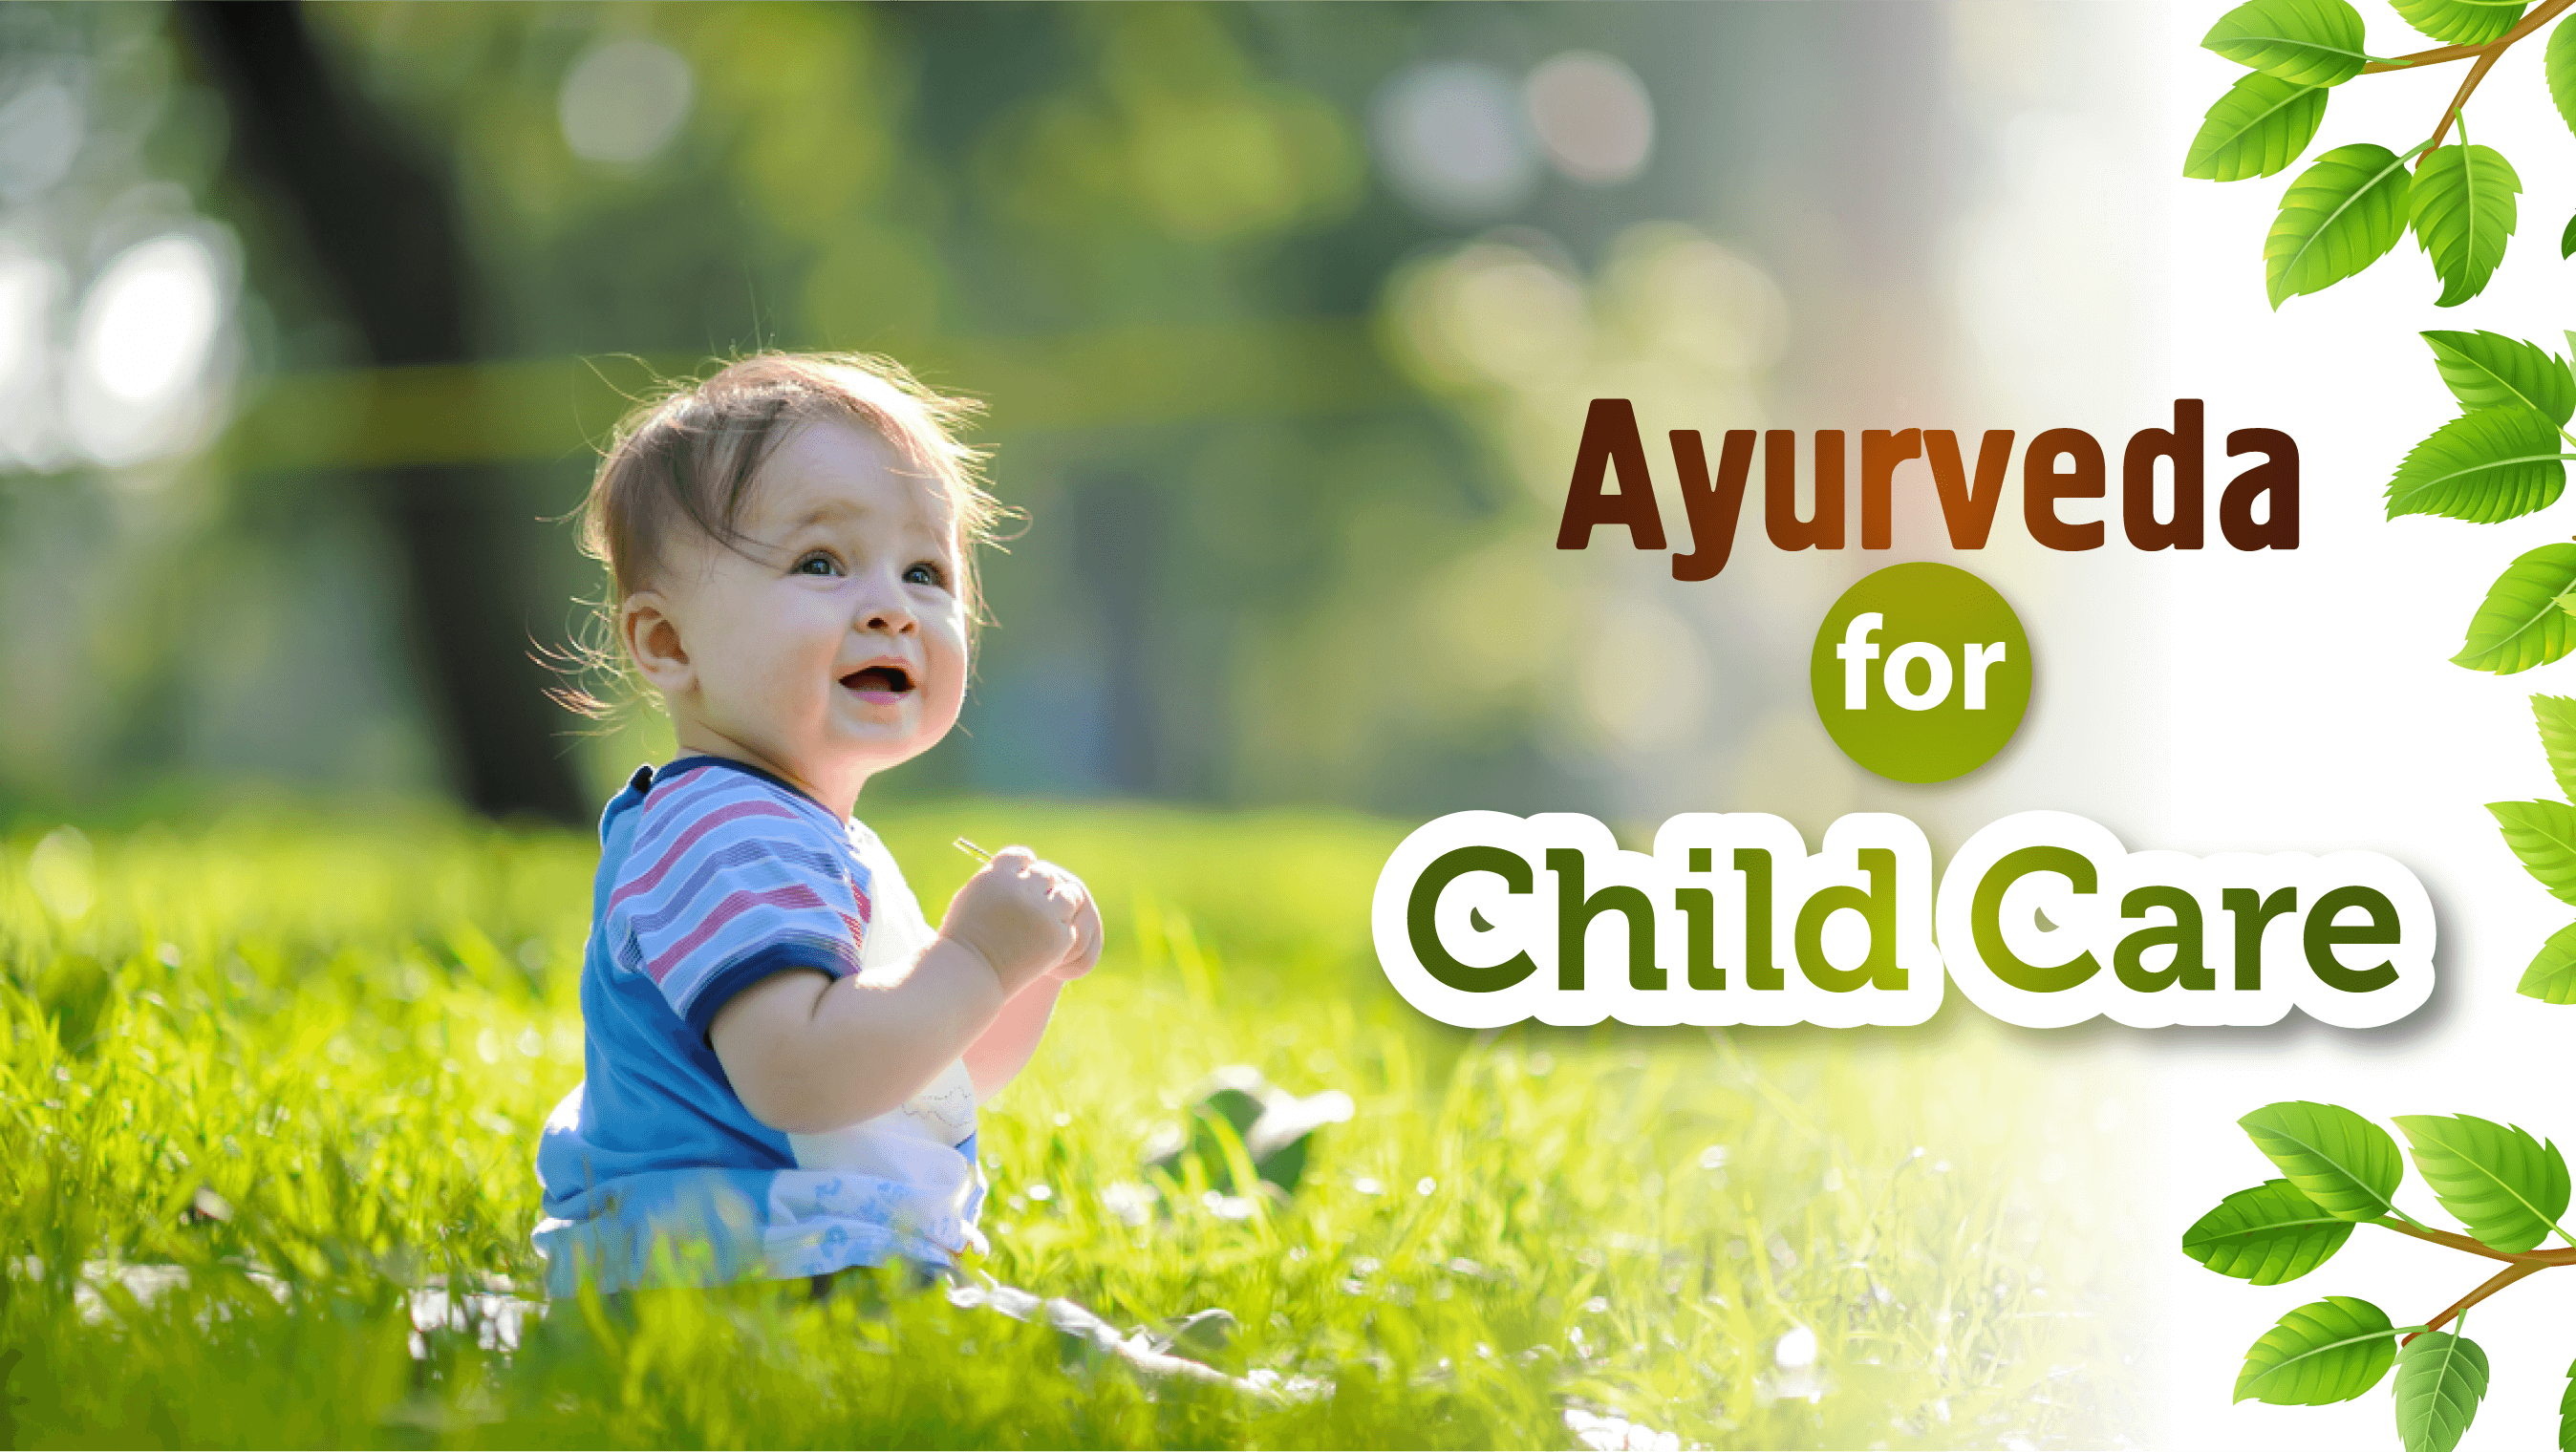 Ayurveda for Child Development: Tips for Child Health Care